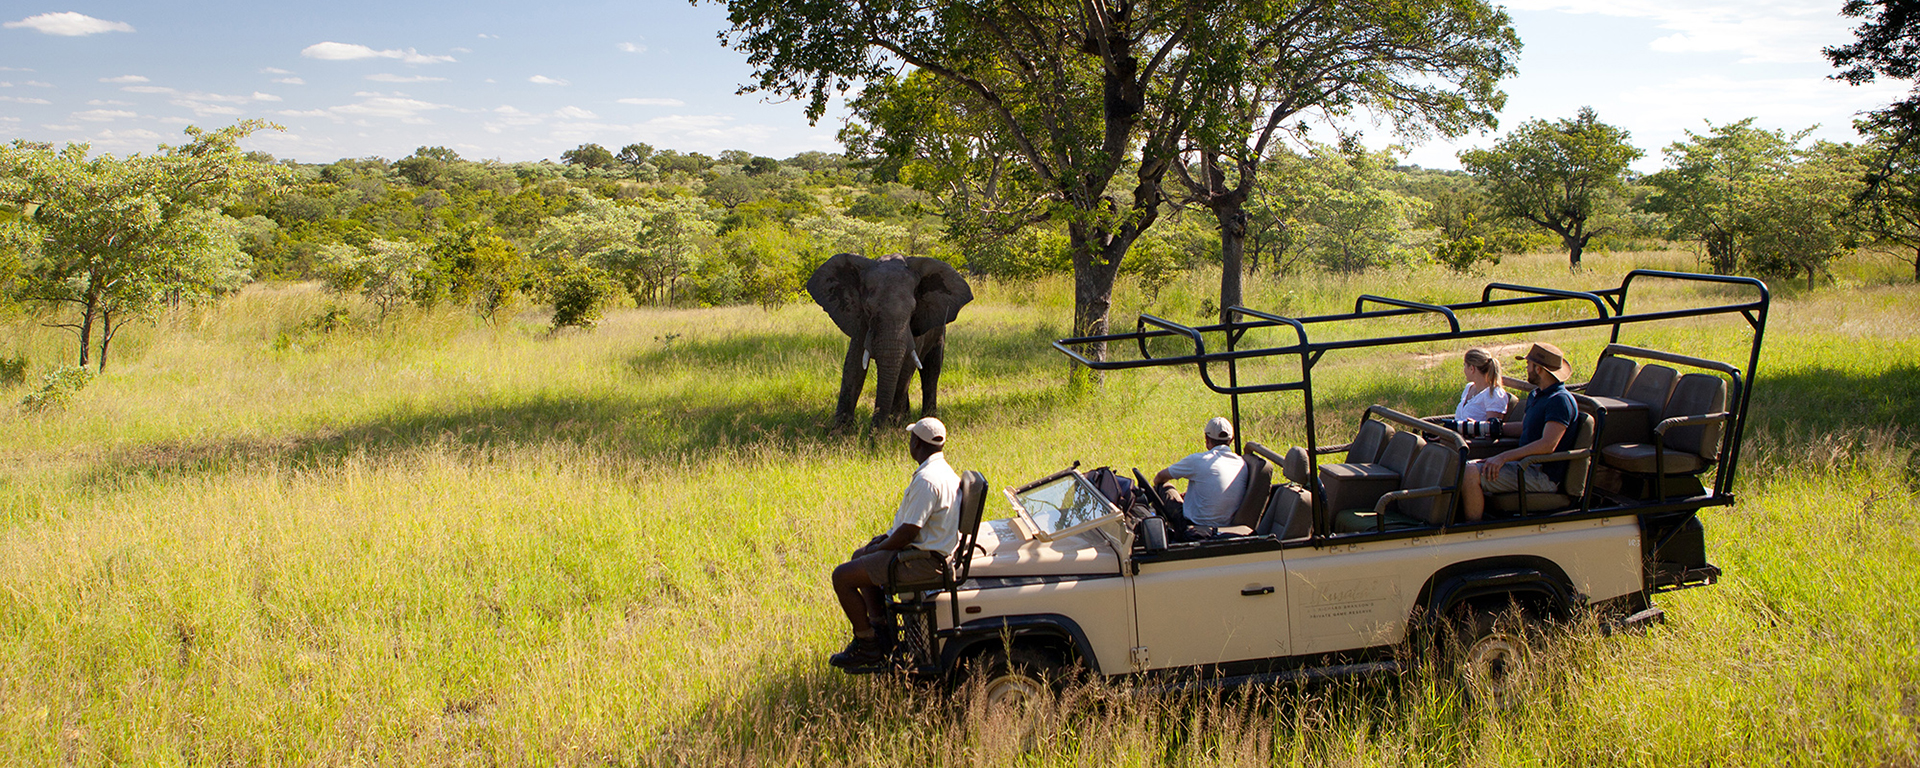 South Africa Safari – Travel Tips & Travel Articles